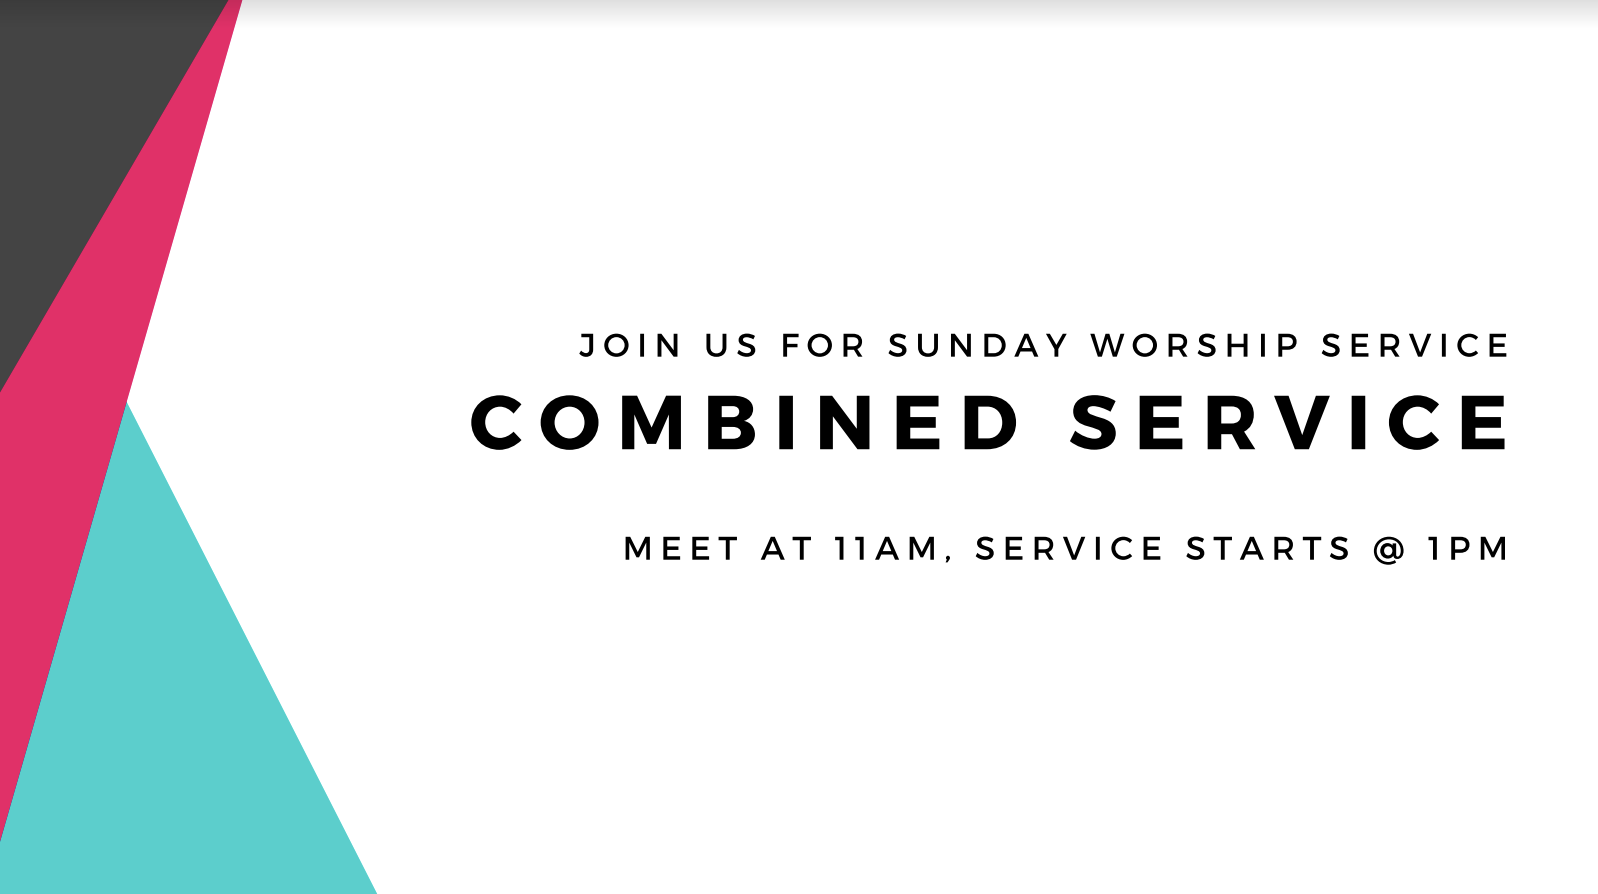 Summer Sundays - We meet on Sundays at 11am - 3pm! Join us for some summer fun before heading into combined service at 1pm!